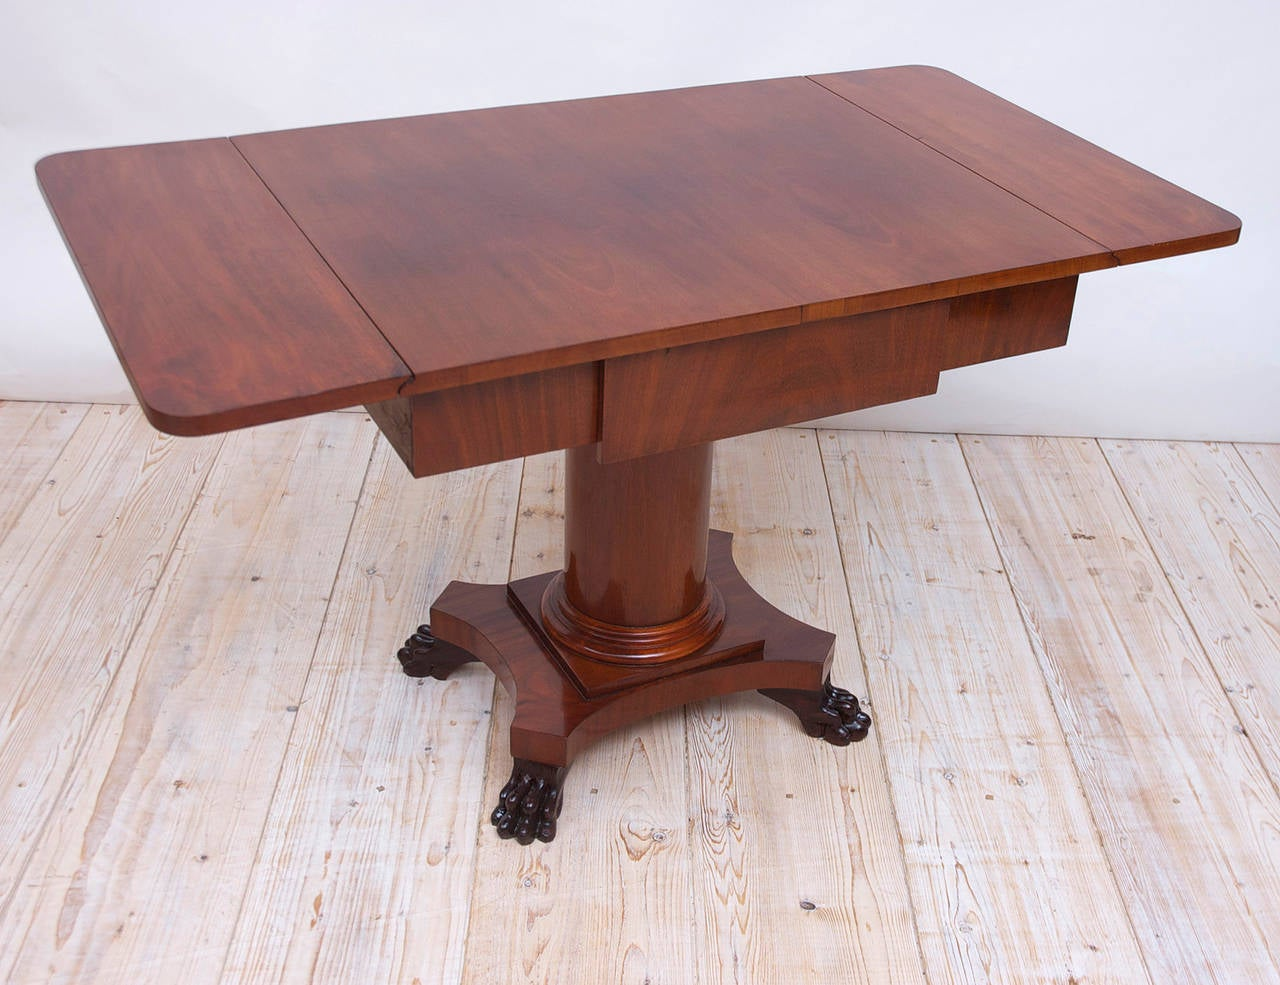 Polished Biedermeier Writing Desk or Sofa Table in Mahogany, Sweden, circa 1840 For Sale